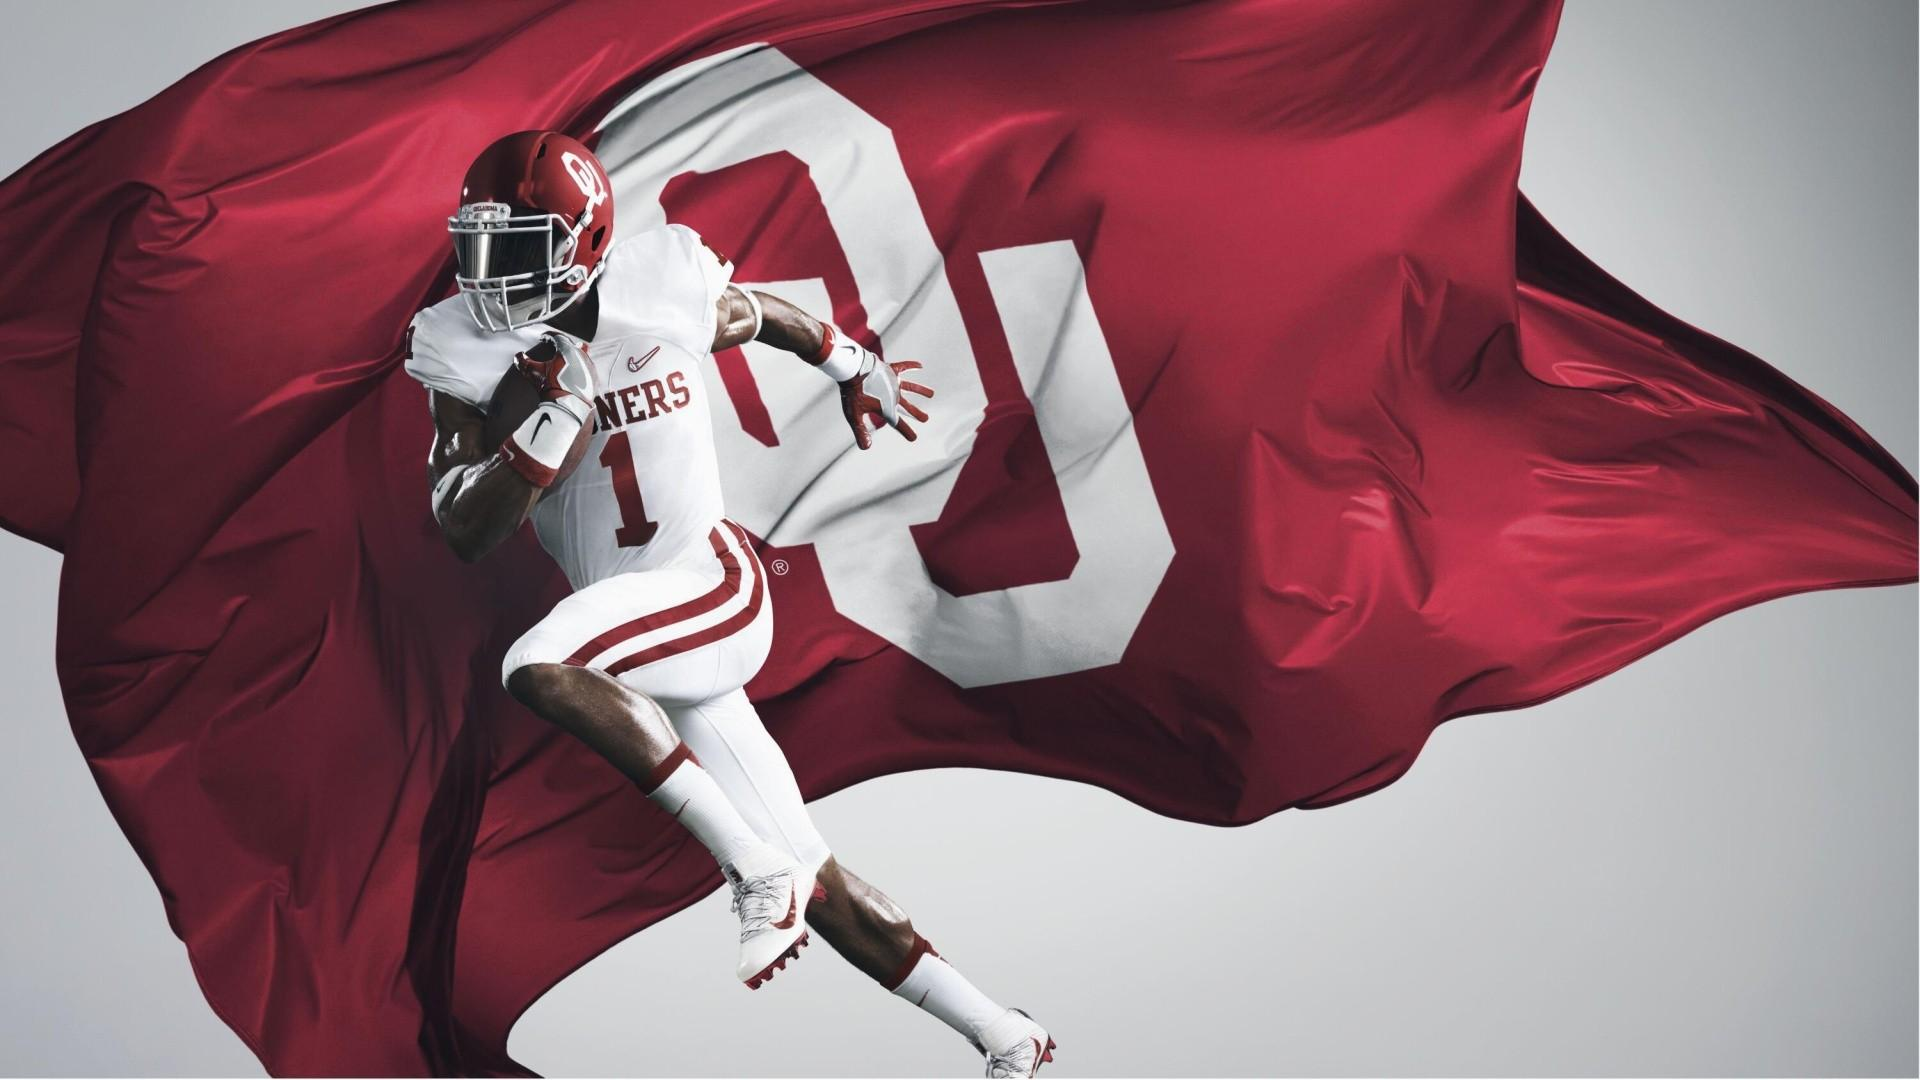 Post your favorite OU desktop backgrounds 1920x1080